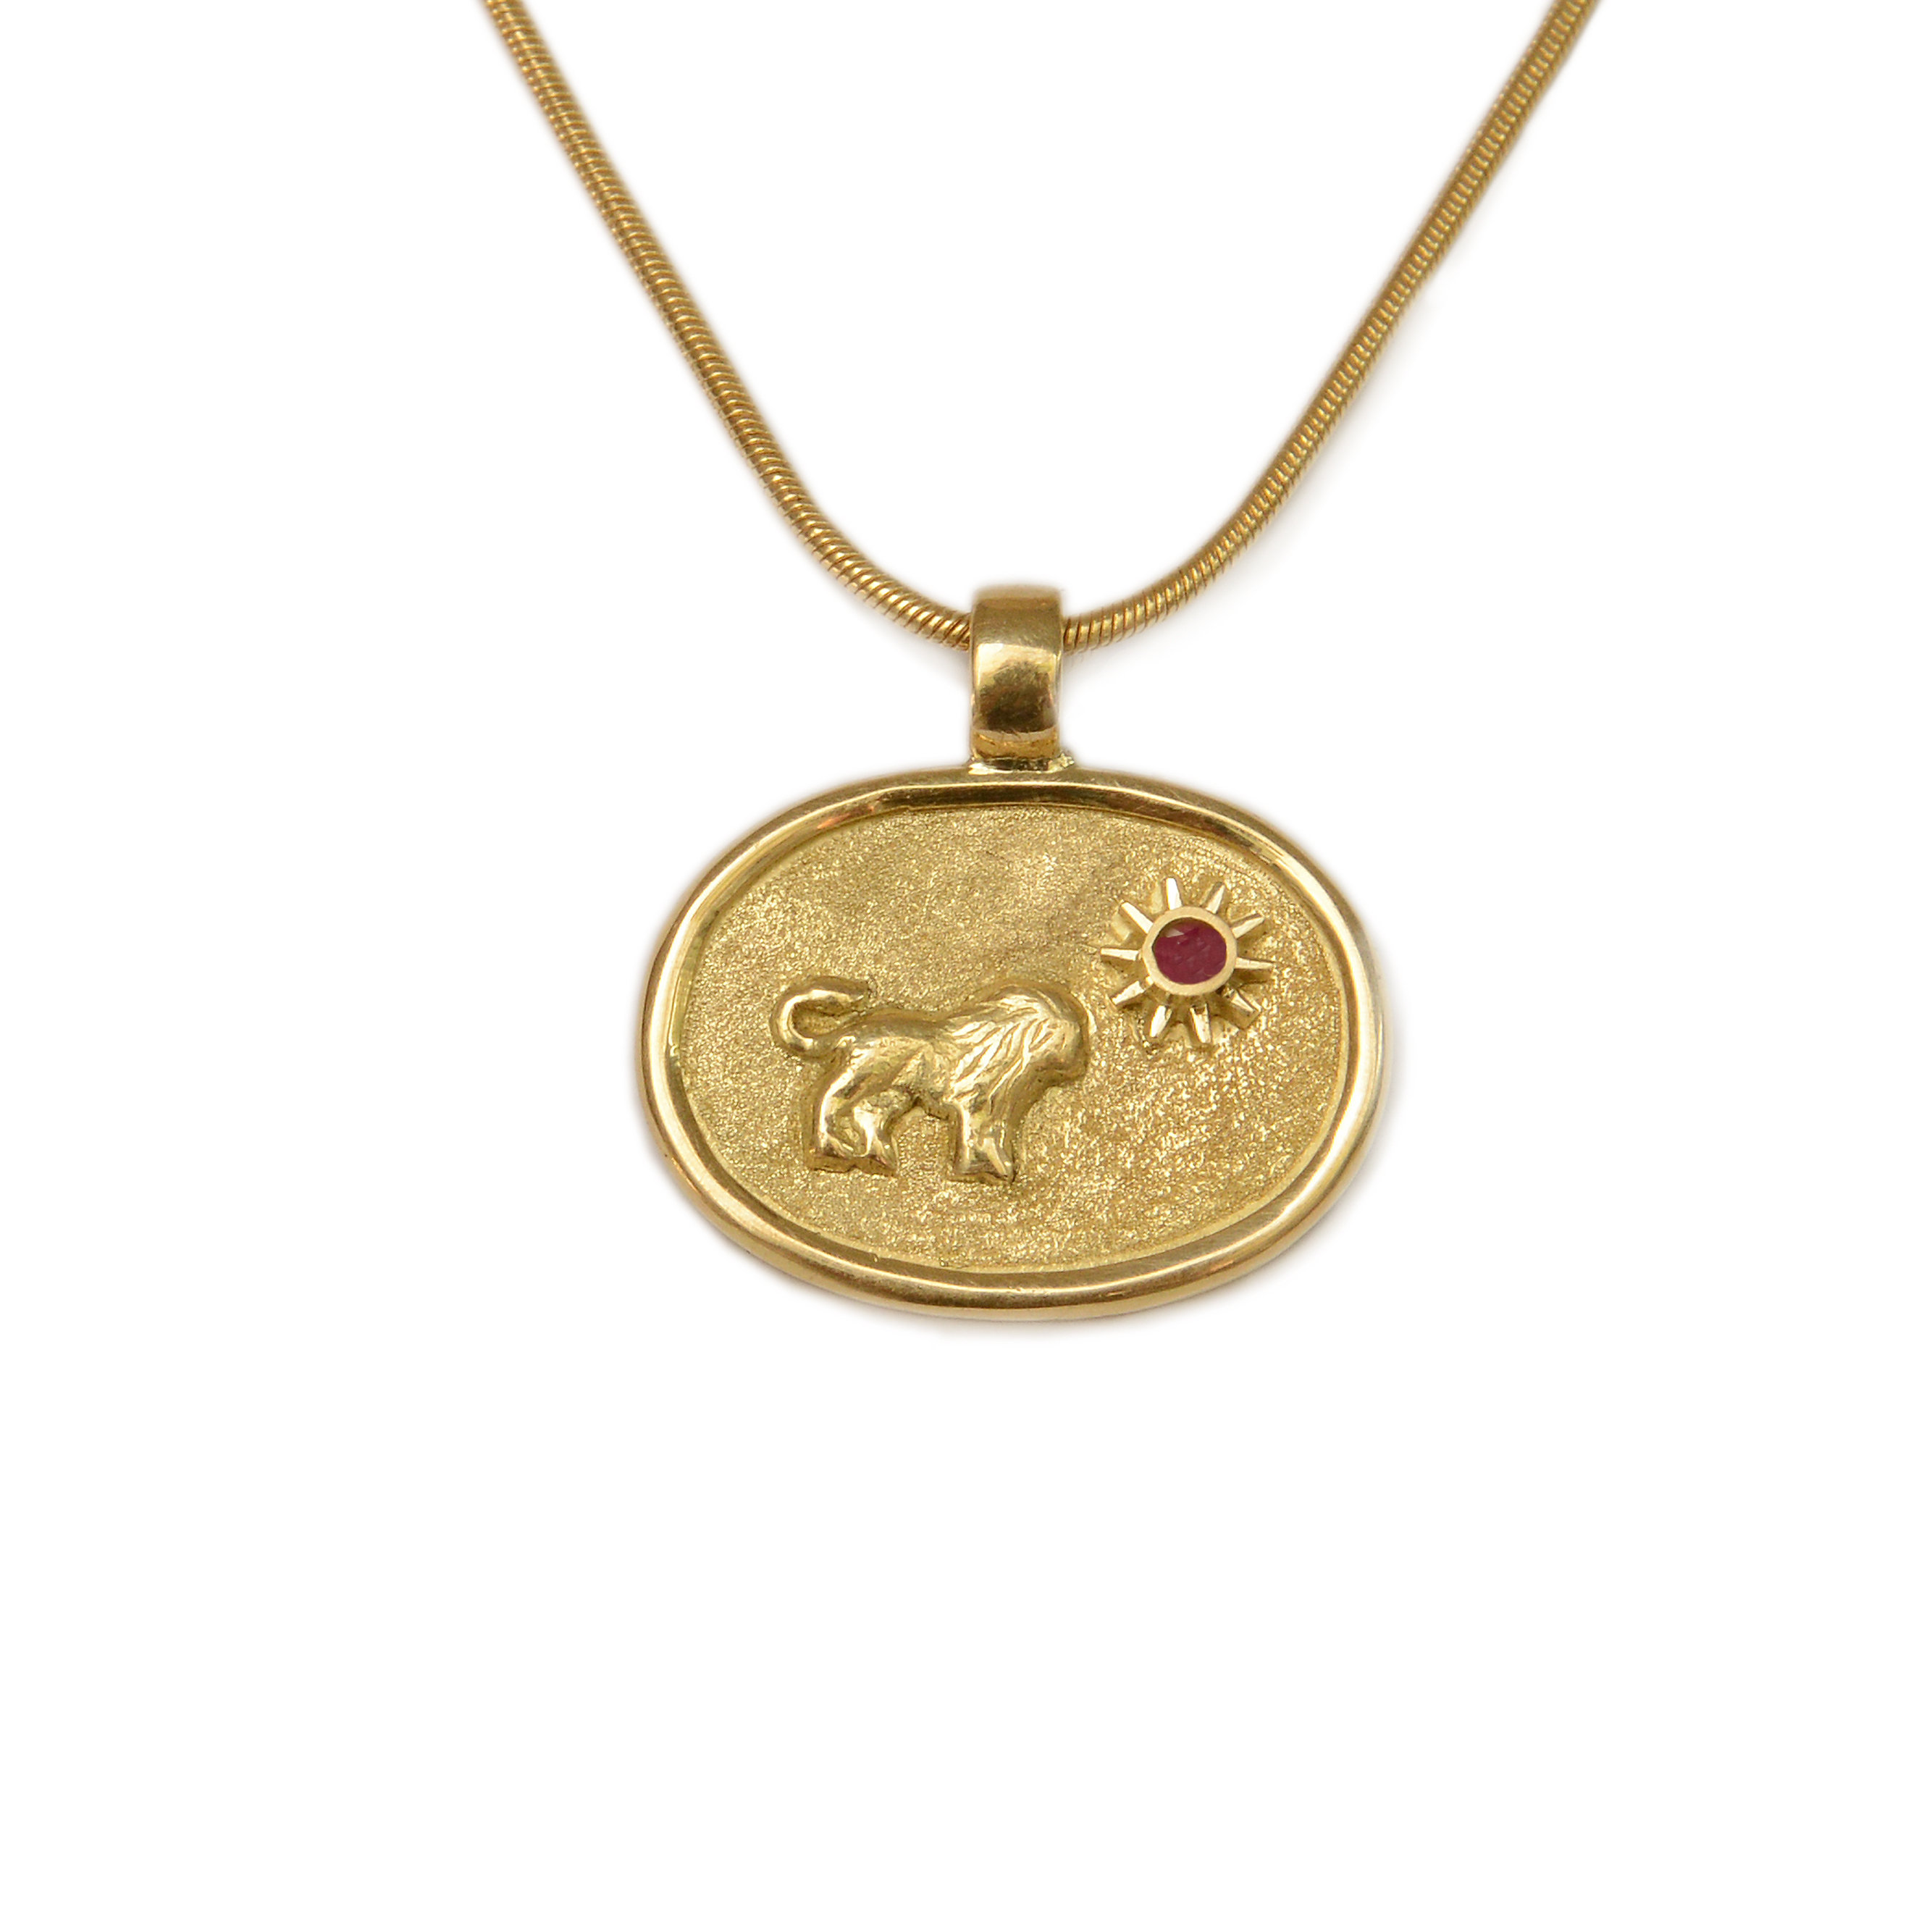 medallion pendant head jewelry fashion l lion necklace gold women gucci with for